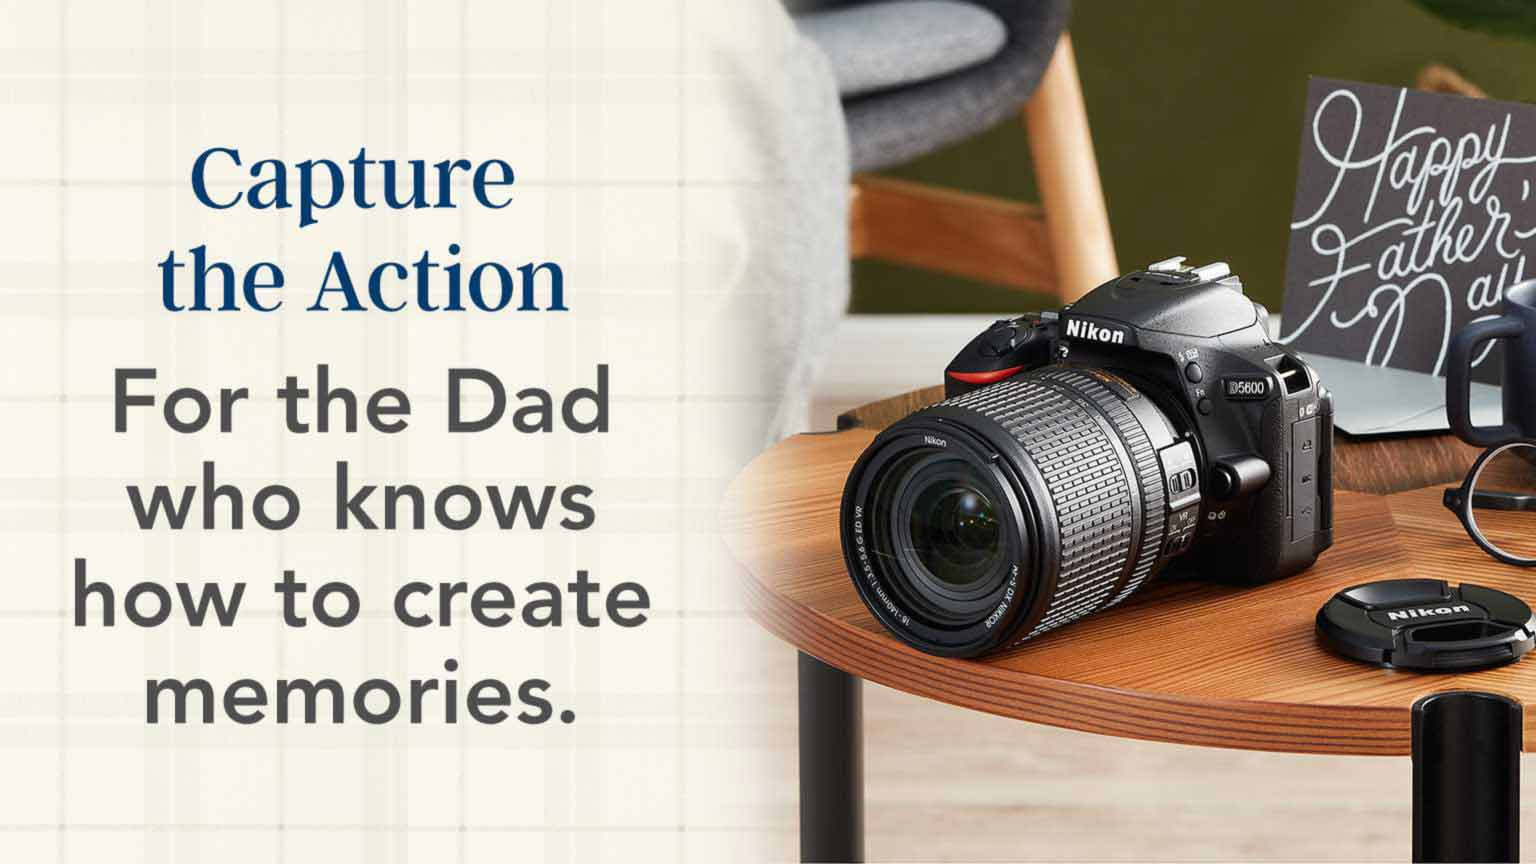 Father's Day - Capture the action